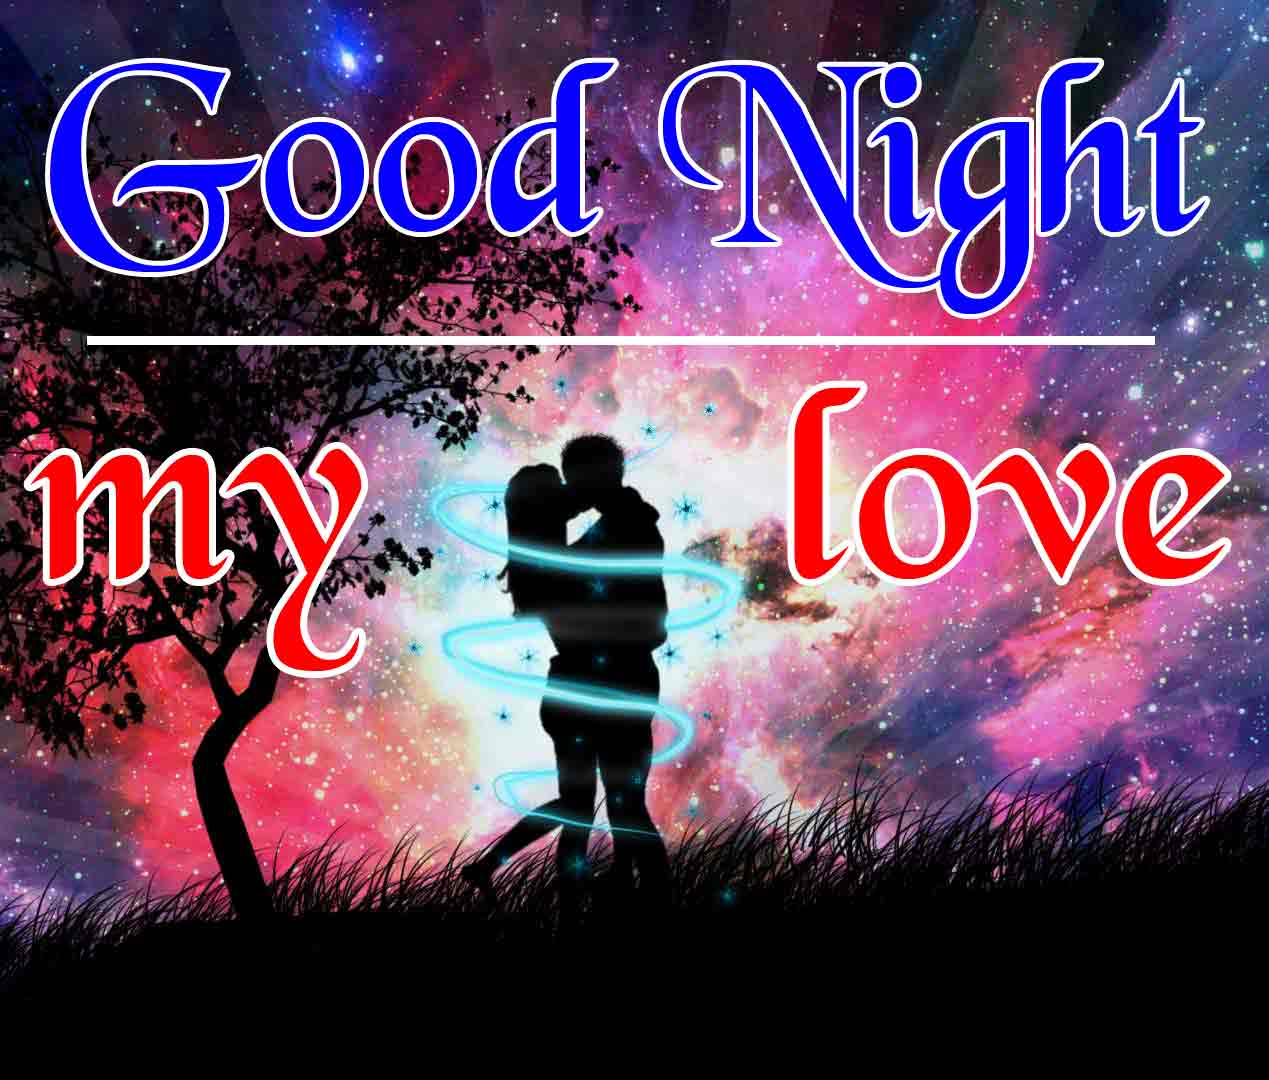 Sweet Couple Good Night Wallpaper Pics Images Download